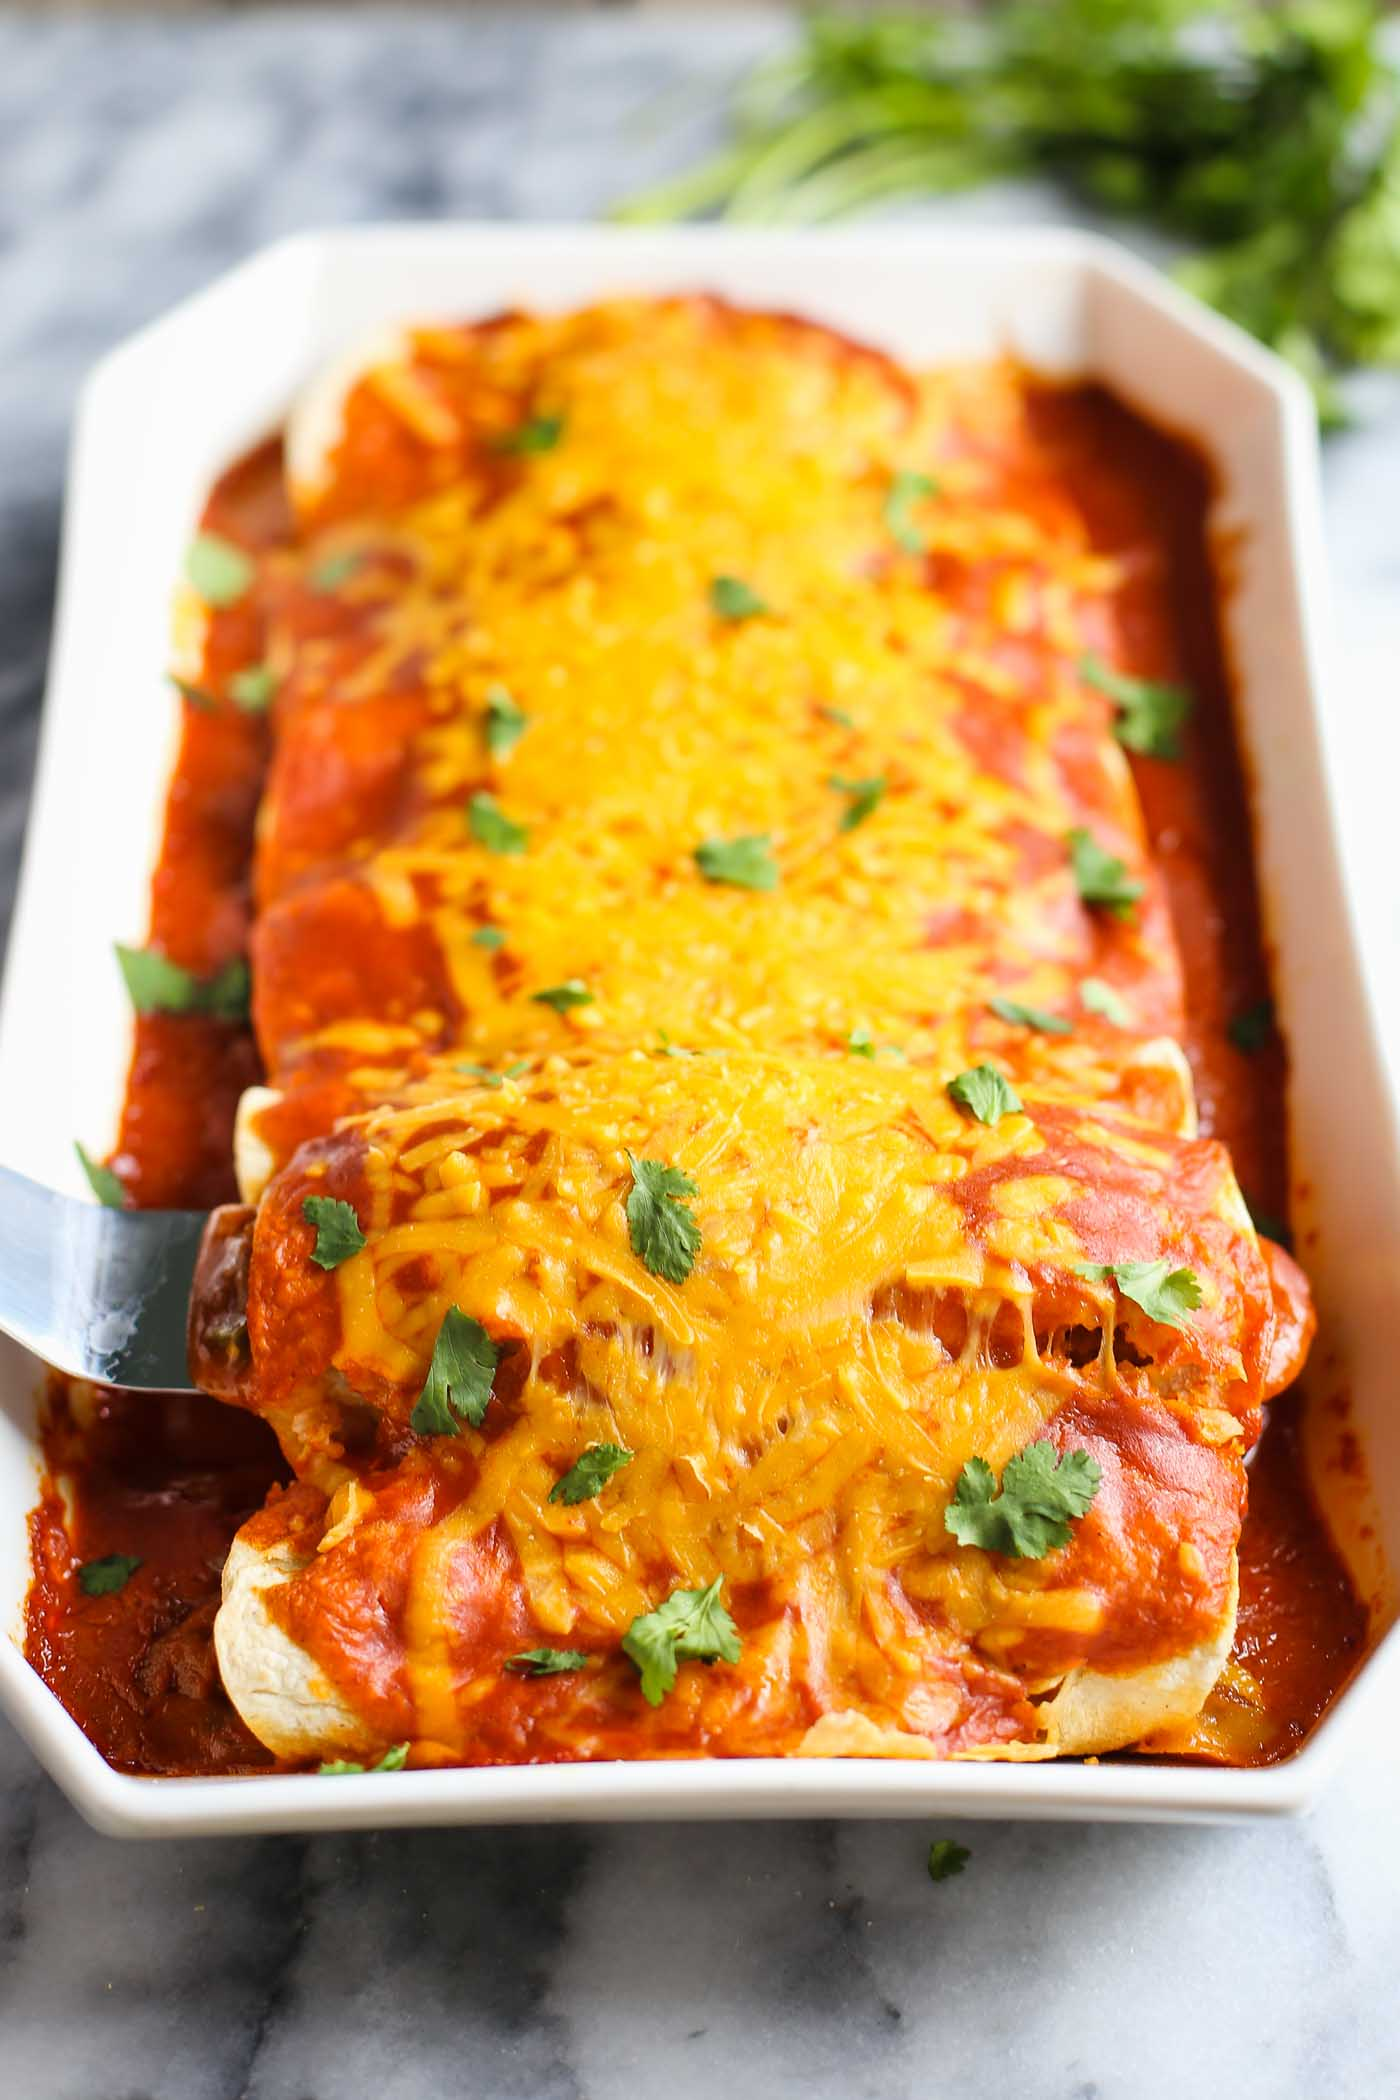 Veggie VEGAN Enchiladas- this enchilada recipe is packed with flavor and nutritous veggies and SURE to please the whole family!